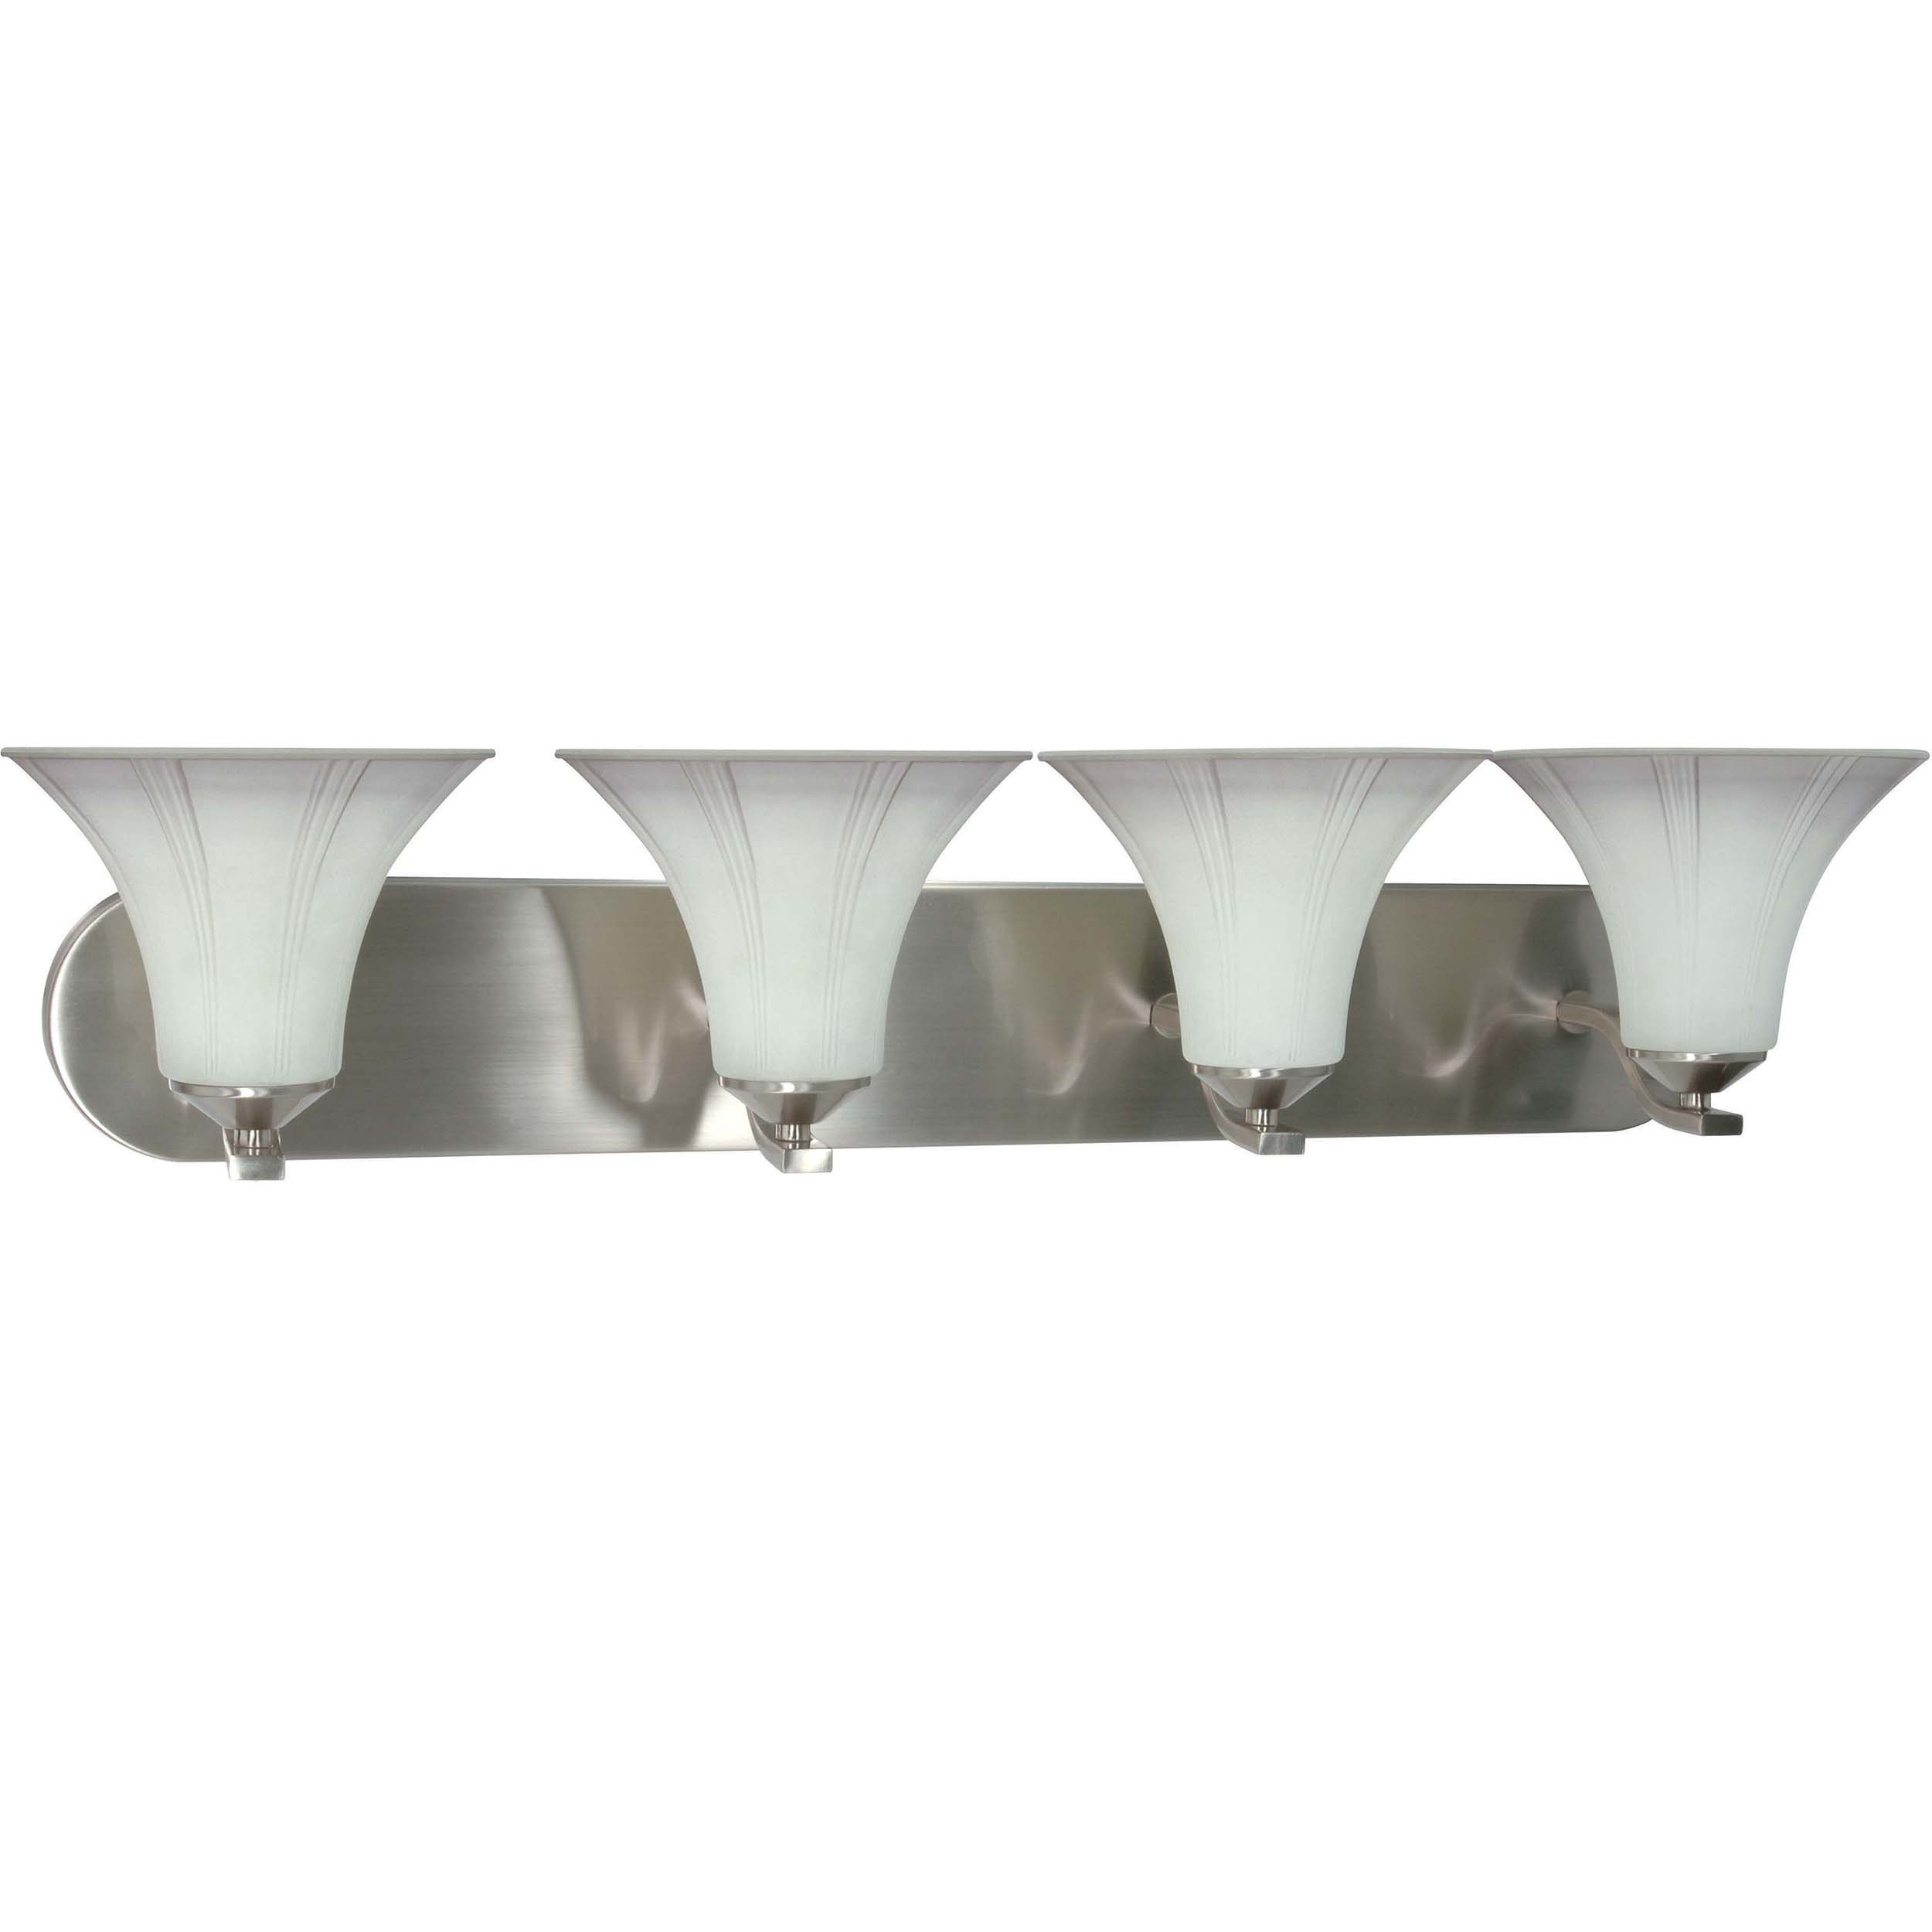 Delano 4 Light Wall Vanity Brushed Nickel with Grey Suede Glass